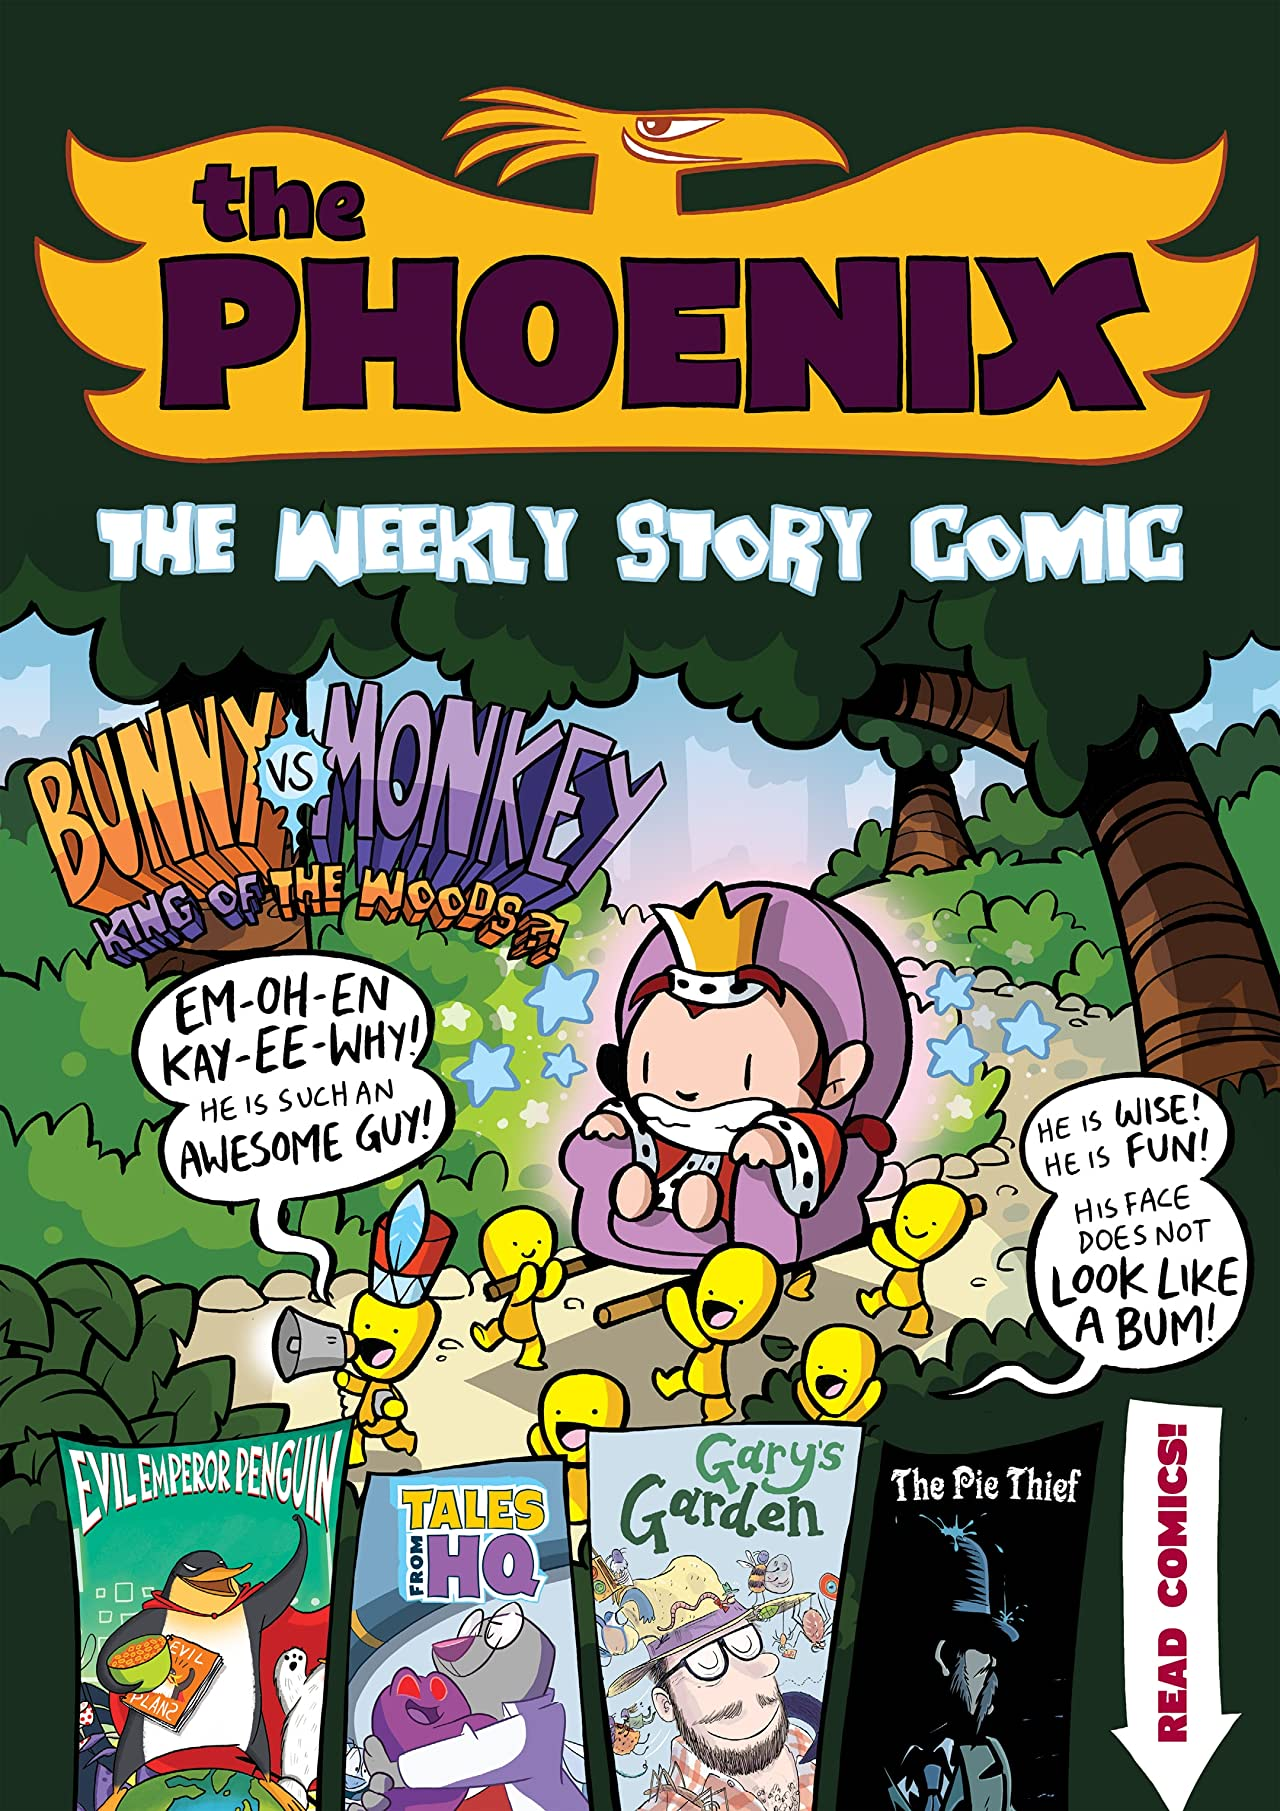 The Phoenix #281: The Weekly Story Comic